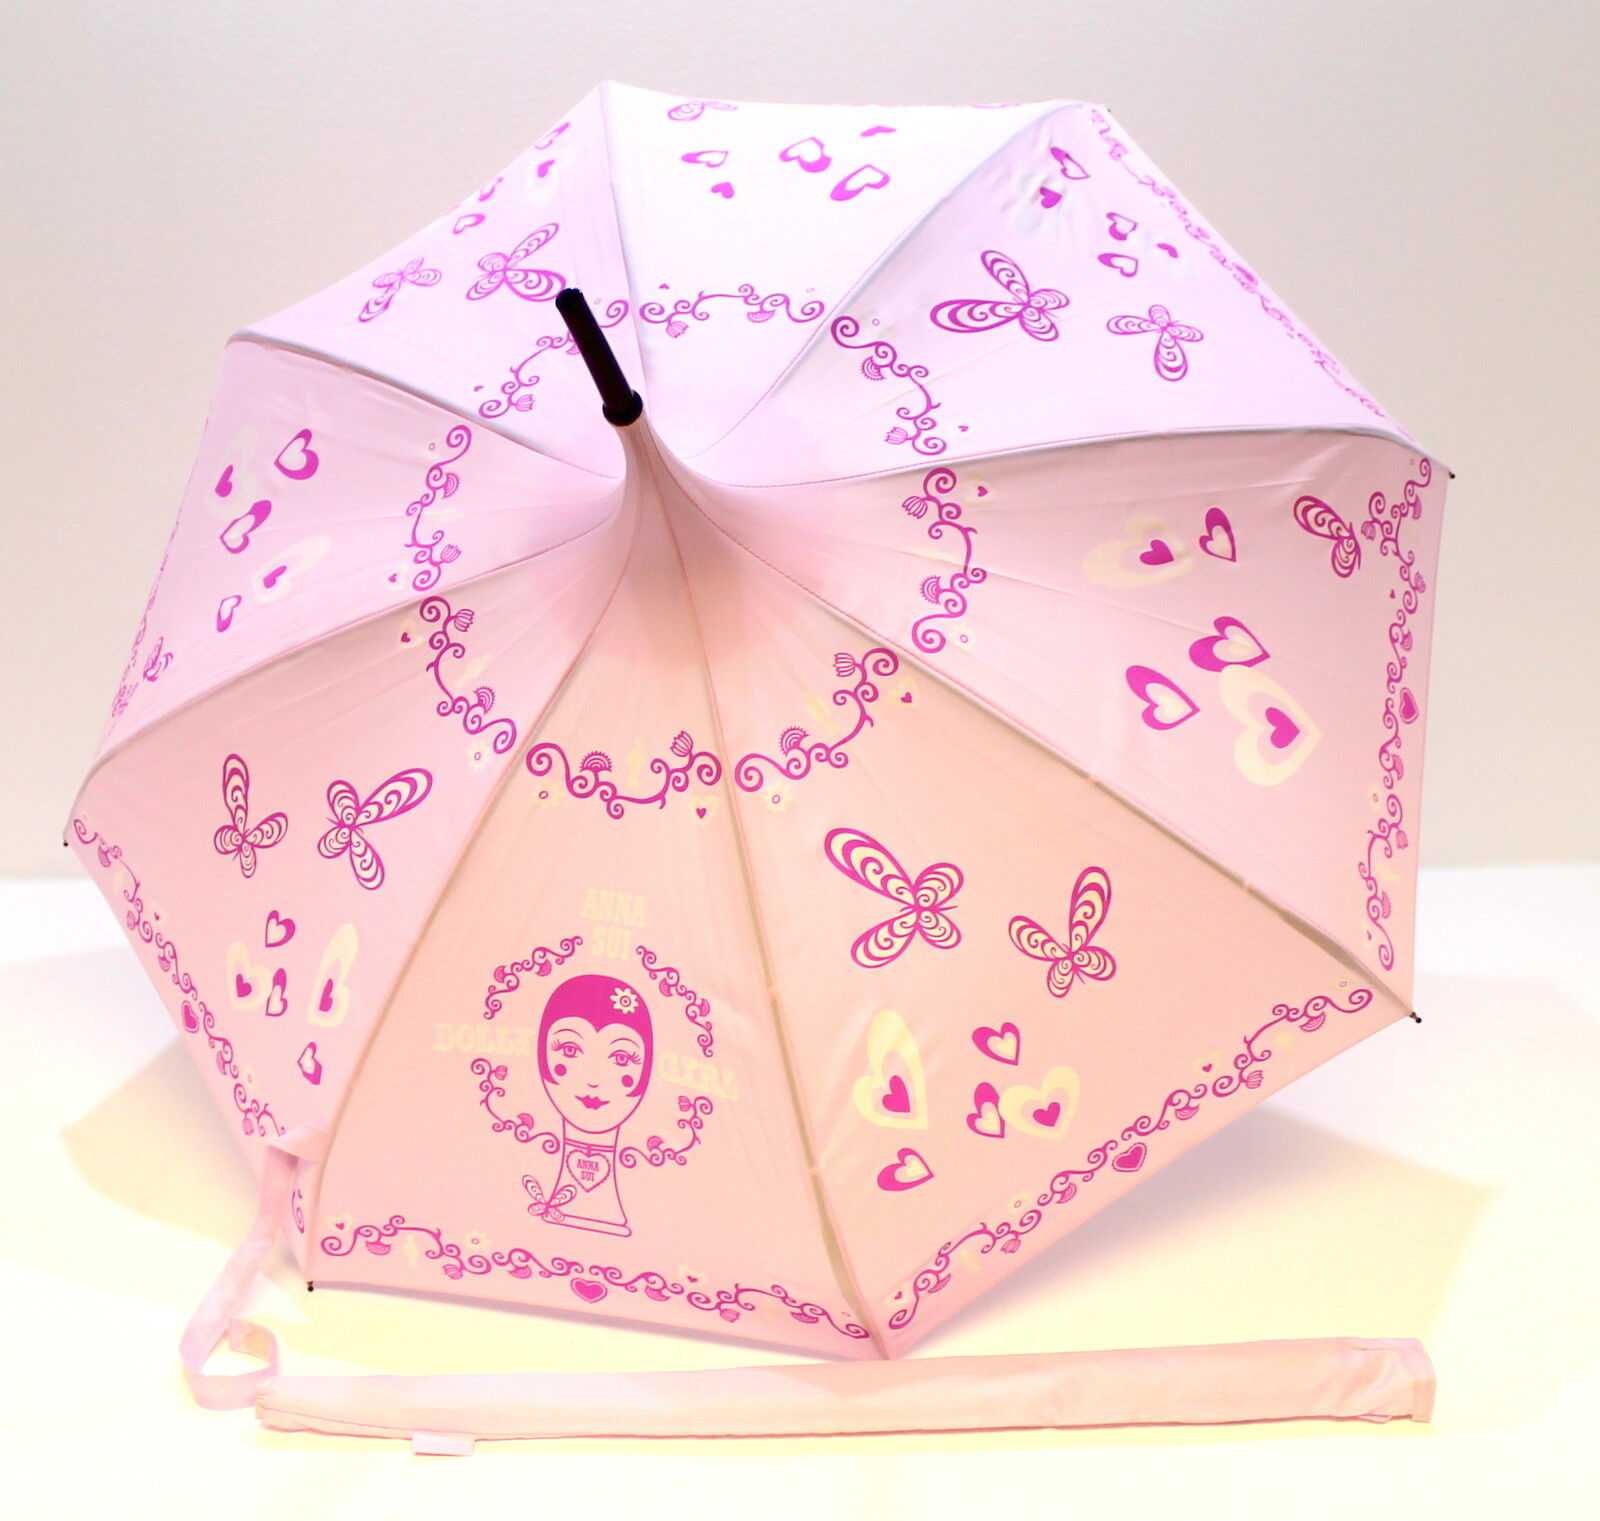 Anna Sui Parfums Dolly Girl Pink Pagoda Shaped Umbrella With Cover ...